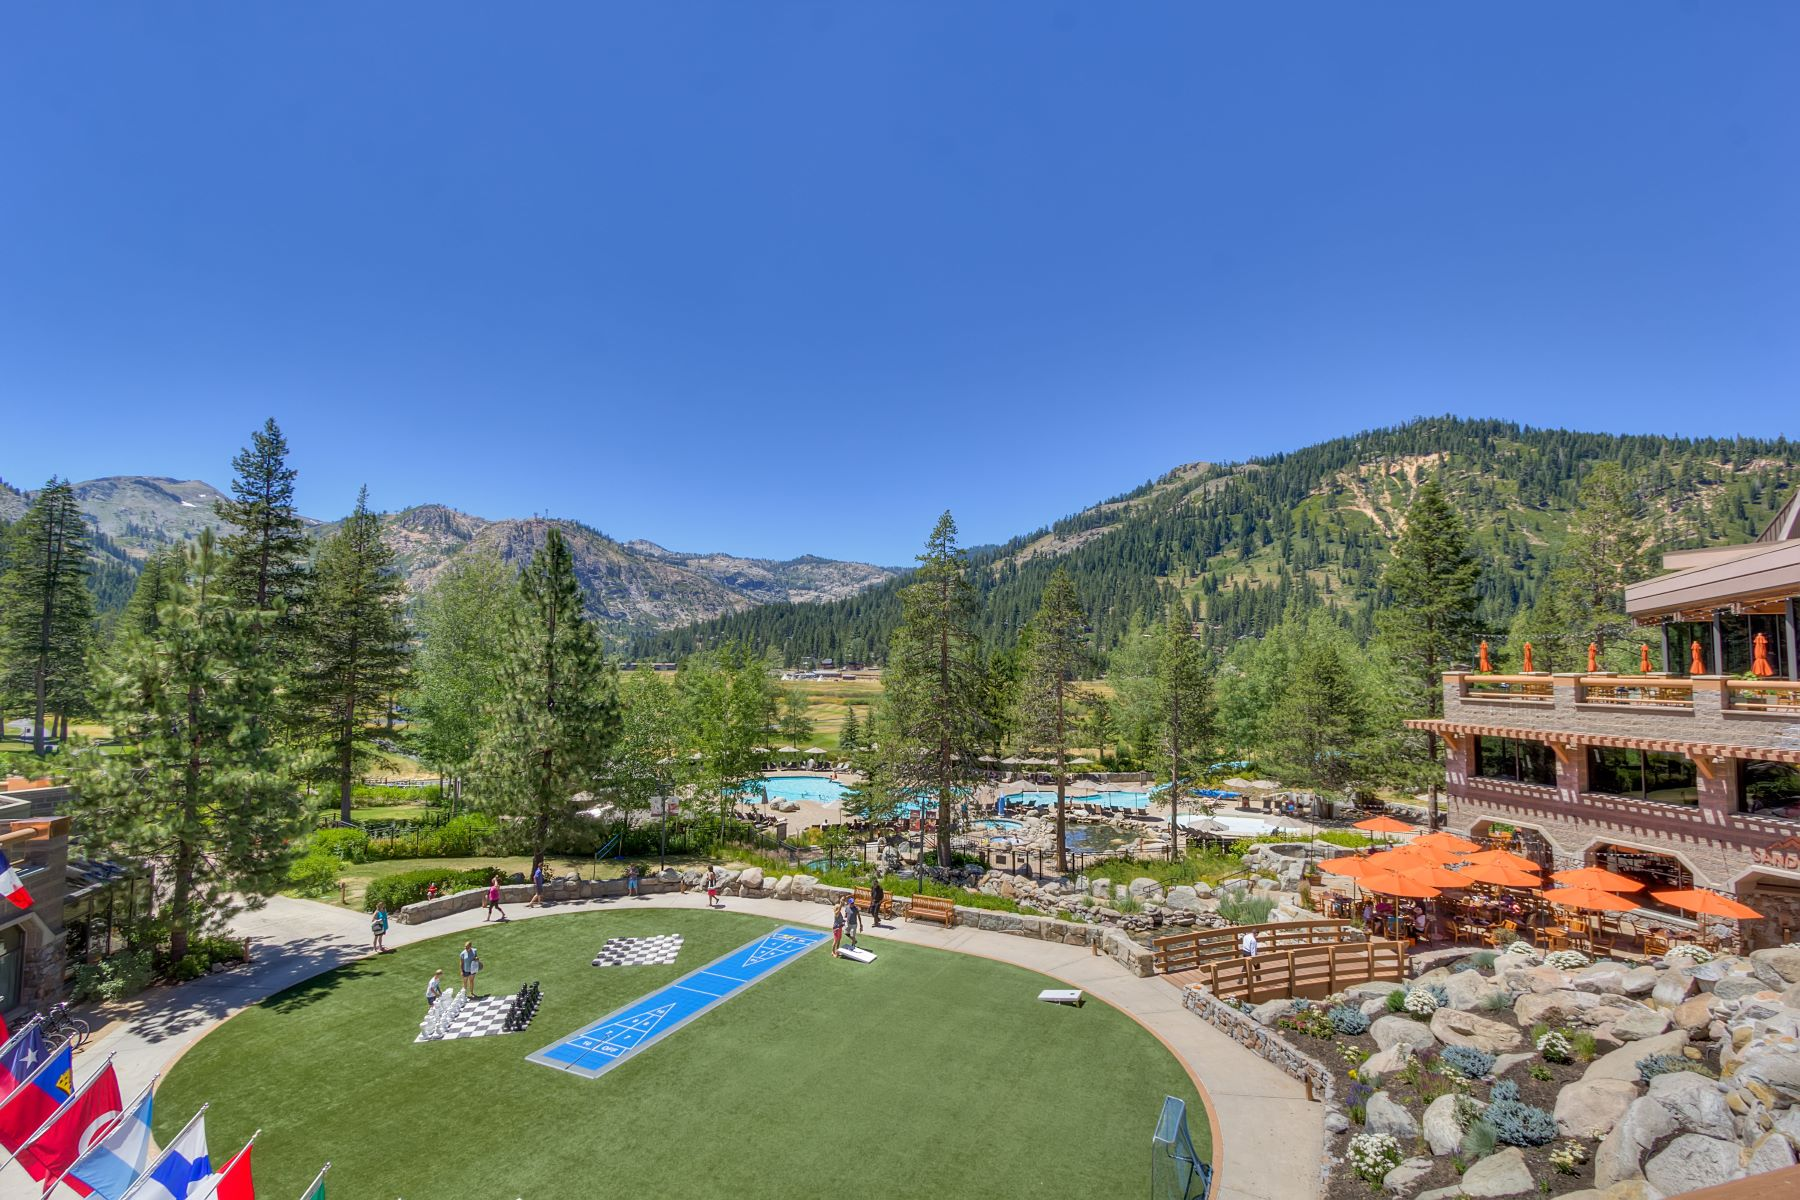 townhouses for Active at 400 Squaw Creek Road # 609/611, Olympic Valley Road, Ca 96146 400 Squaw Creek Road 609/611 Olympic Valley, California 96146 United States